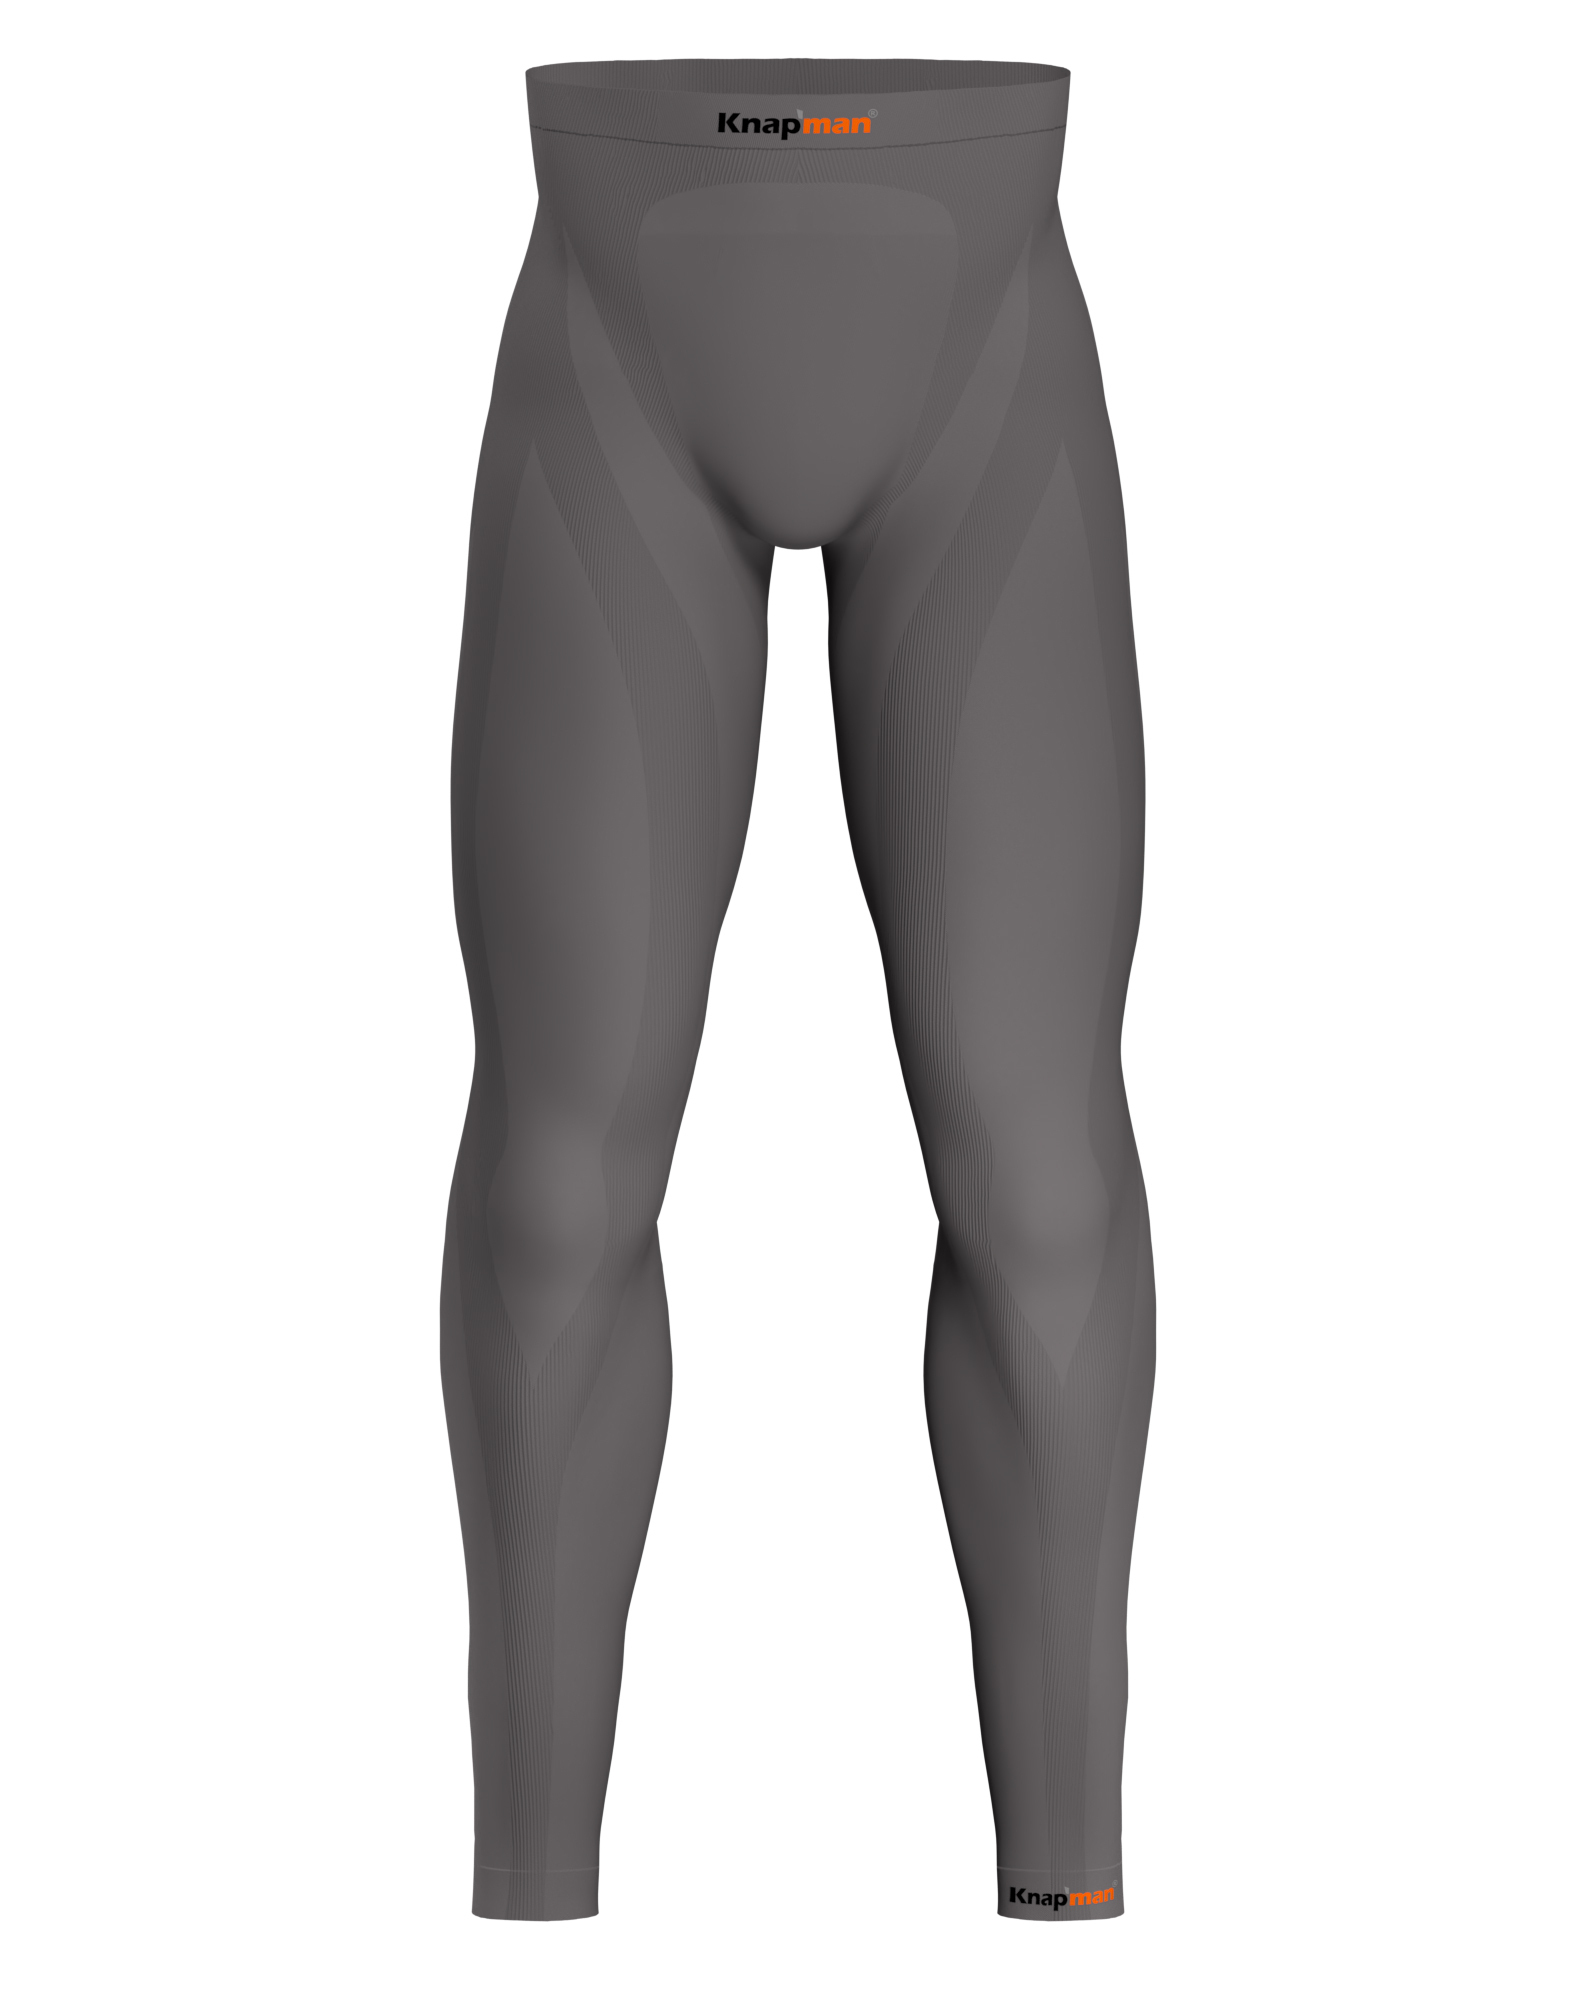 Knapman Men's Compression Tights Long 45% grey